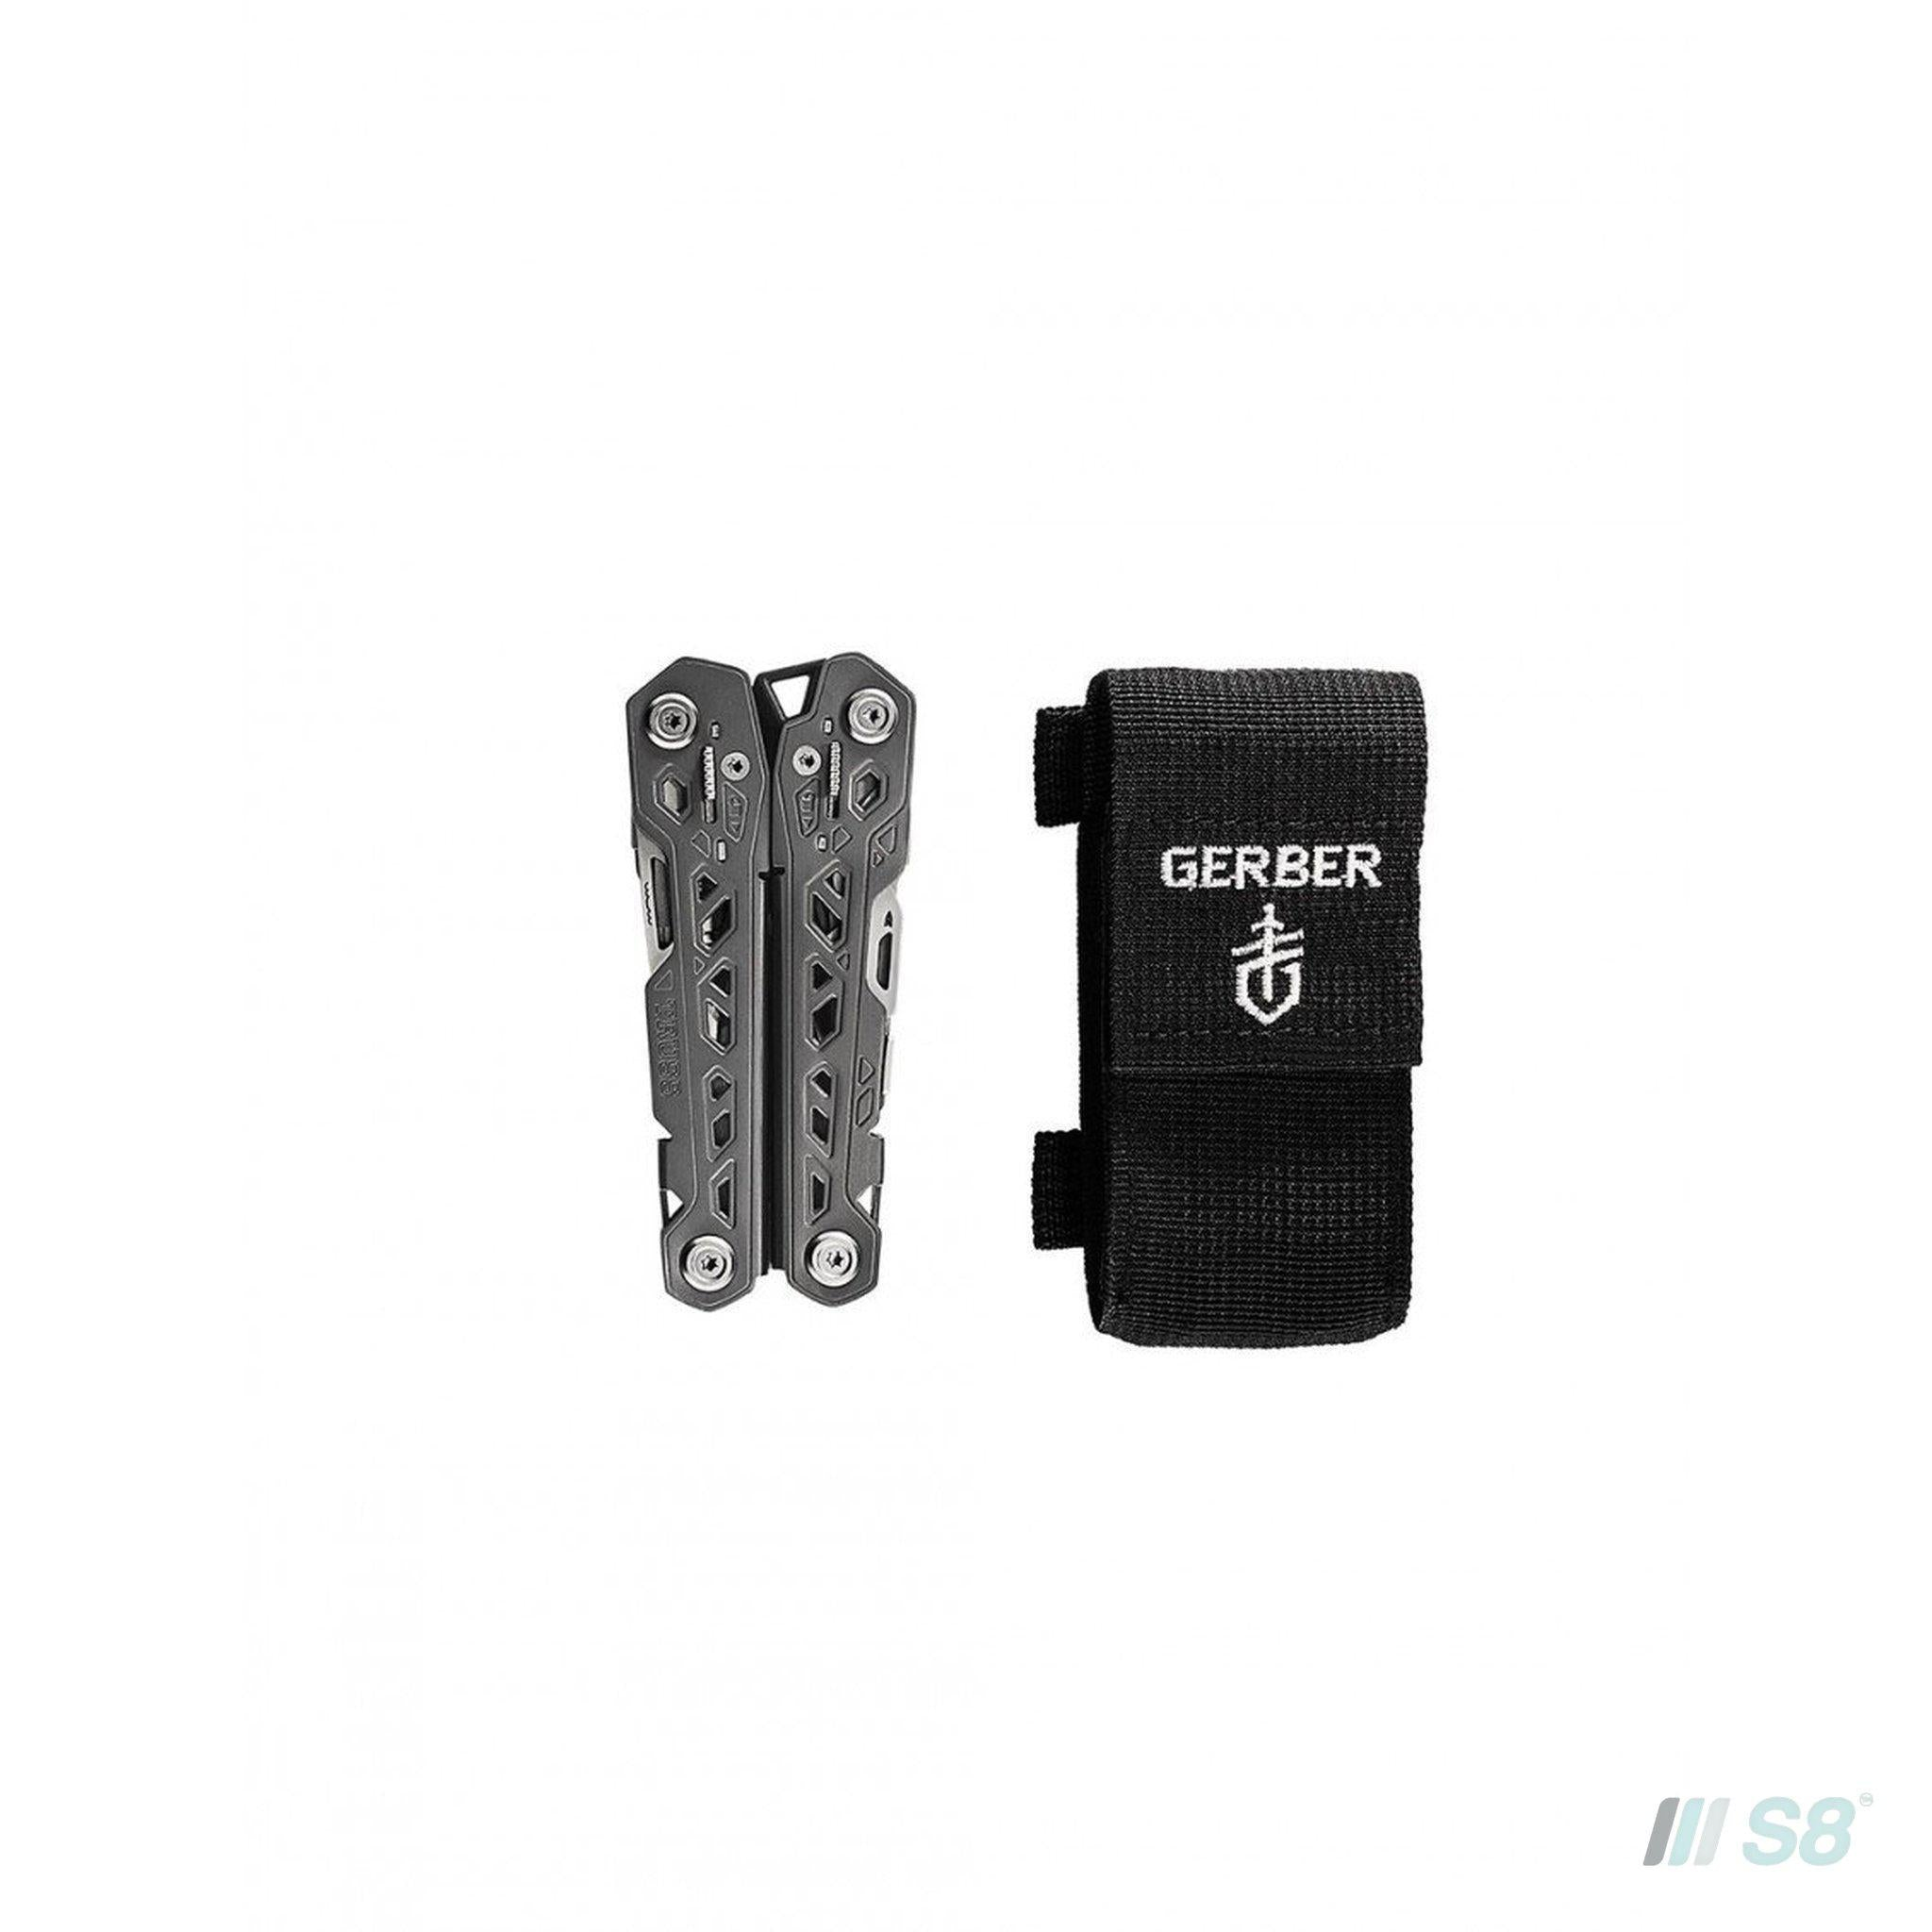 Gerber Truss-Gerber-S8 Products Group